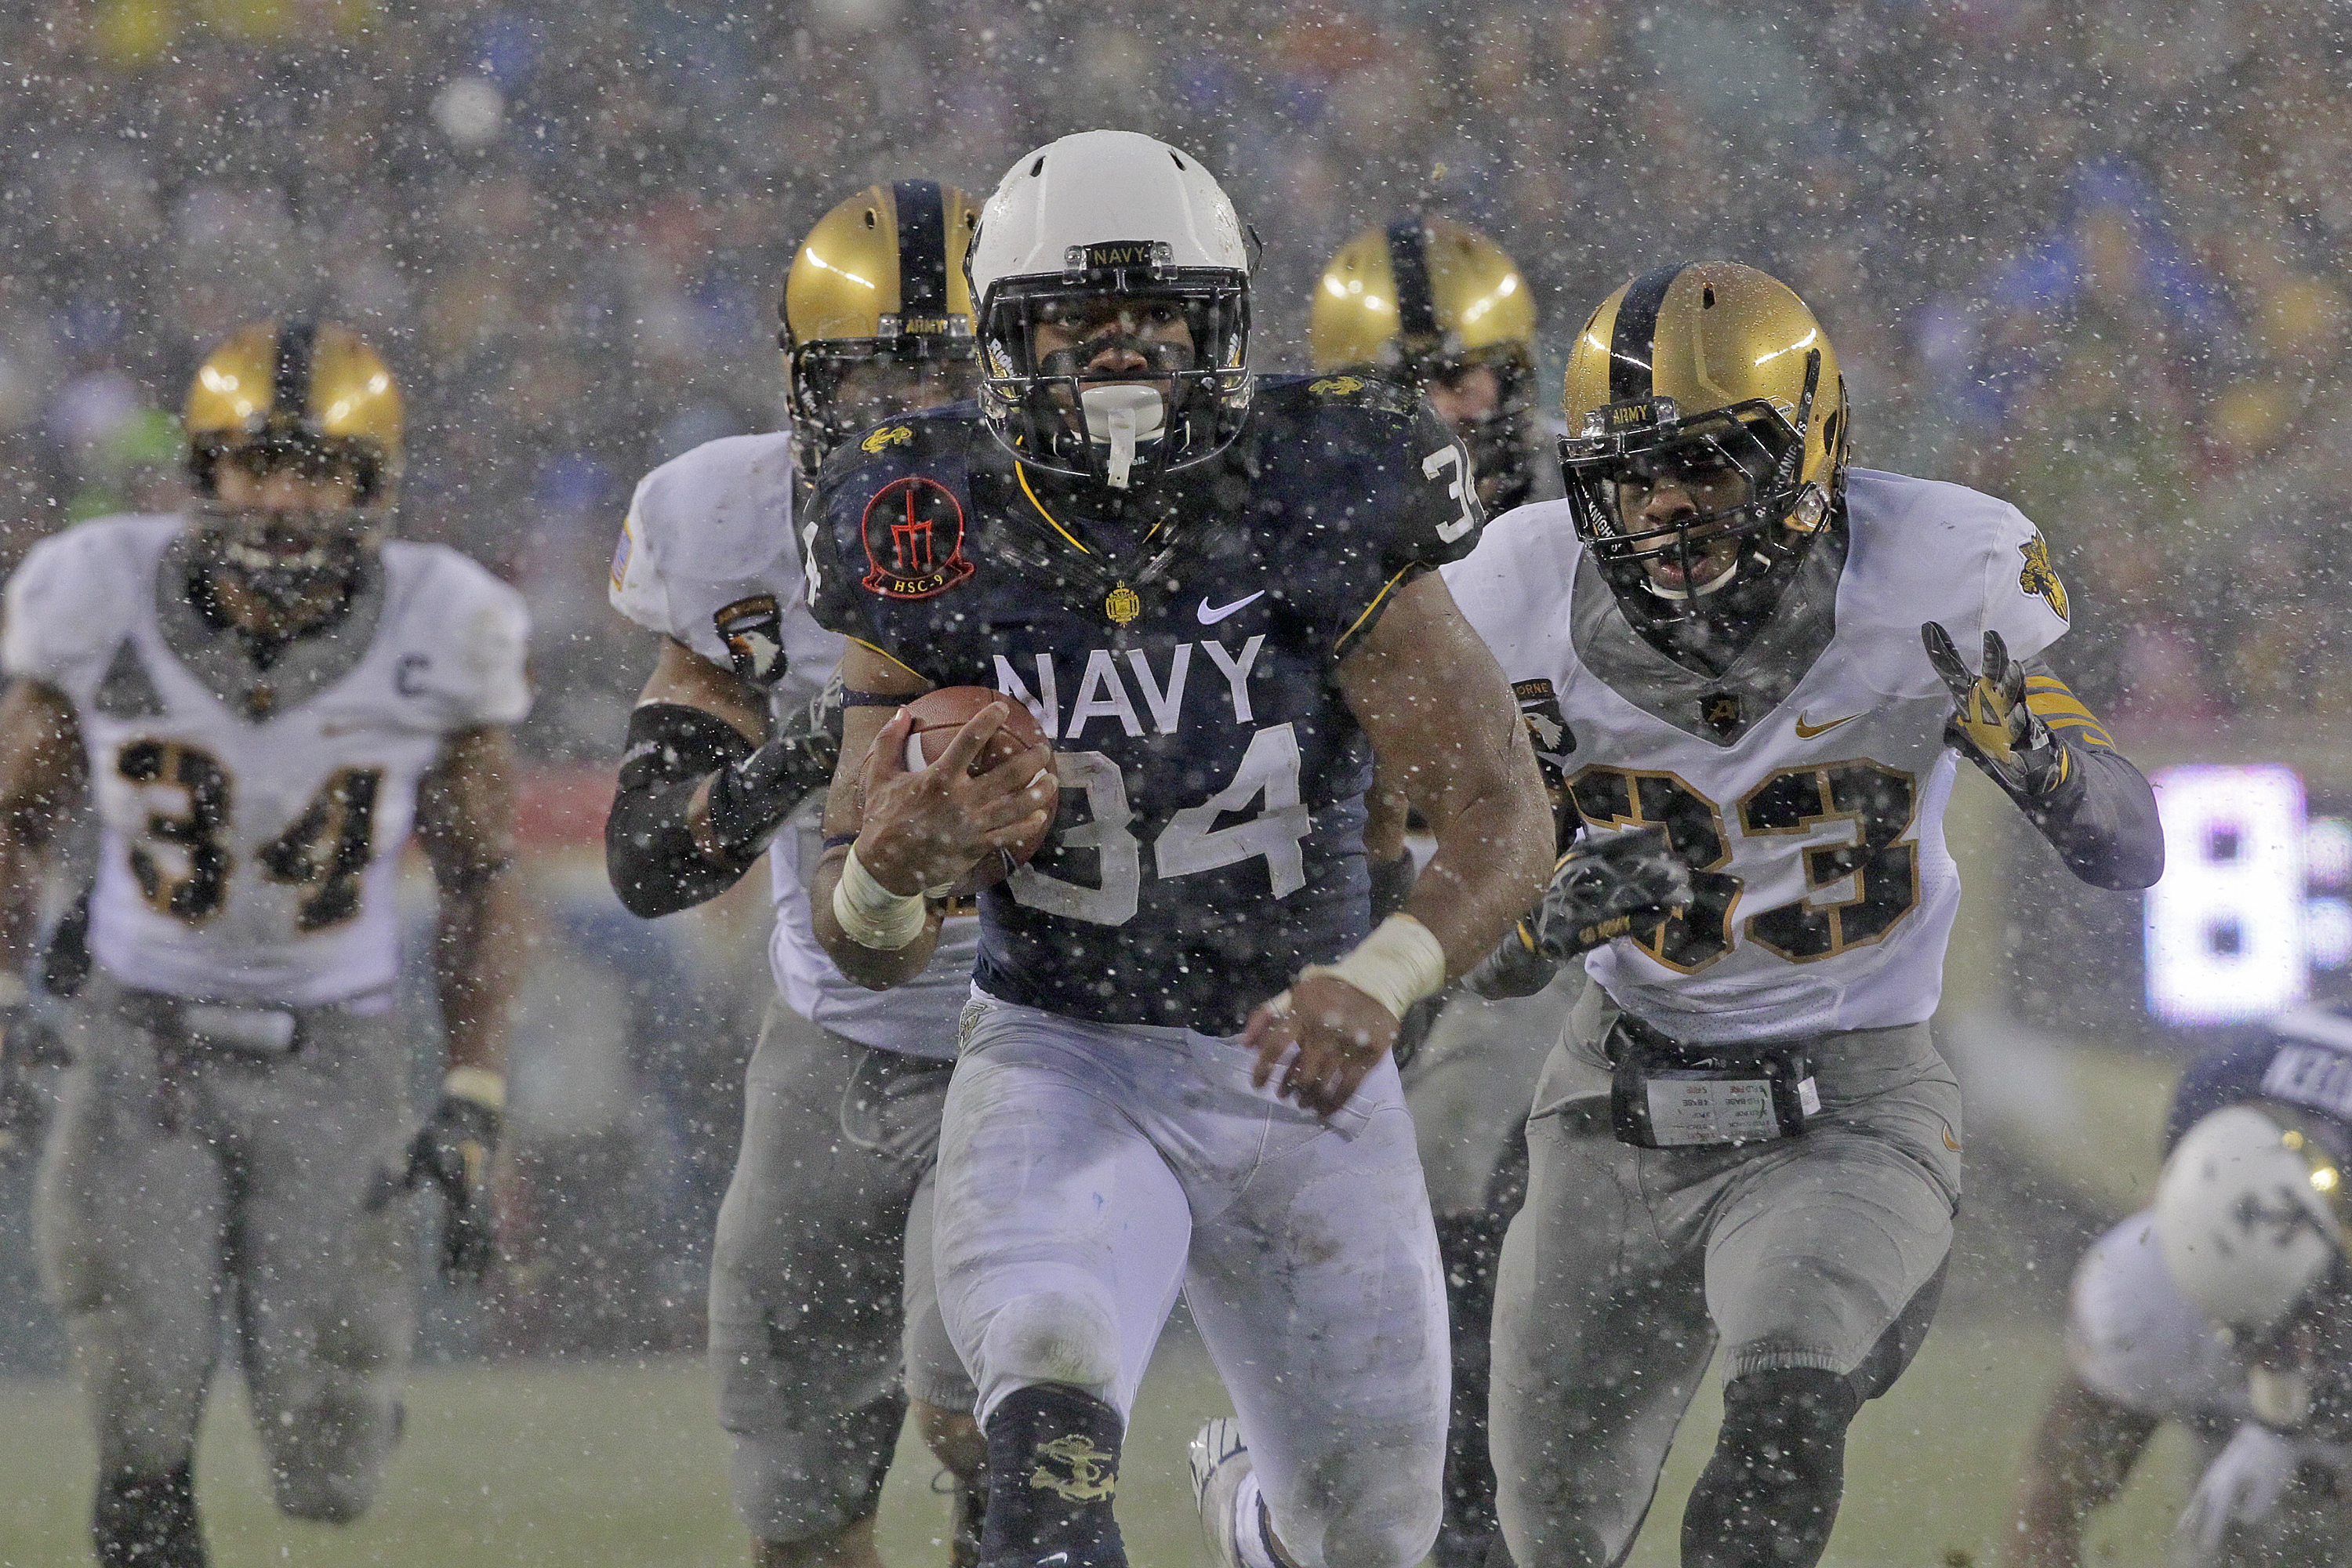 Army-Navy 2017: What to Watch for in Saturday's 118th Meeting